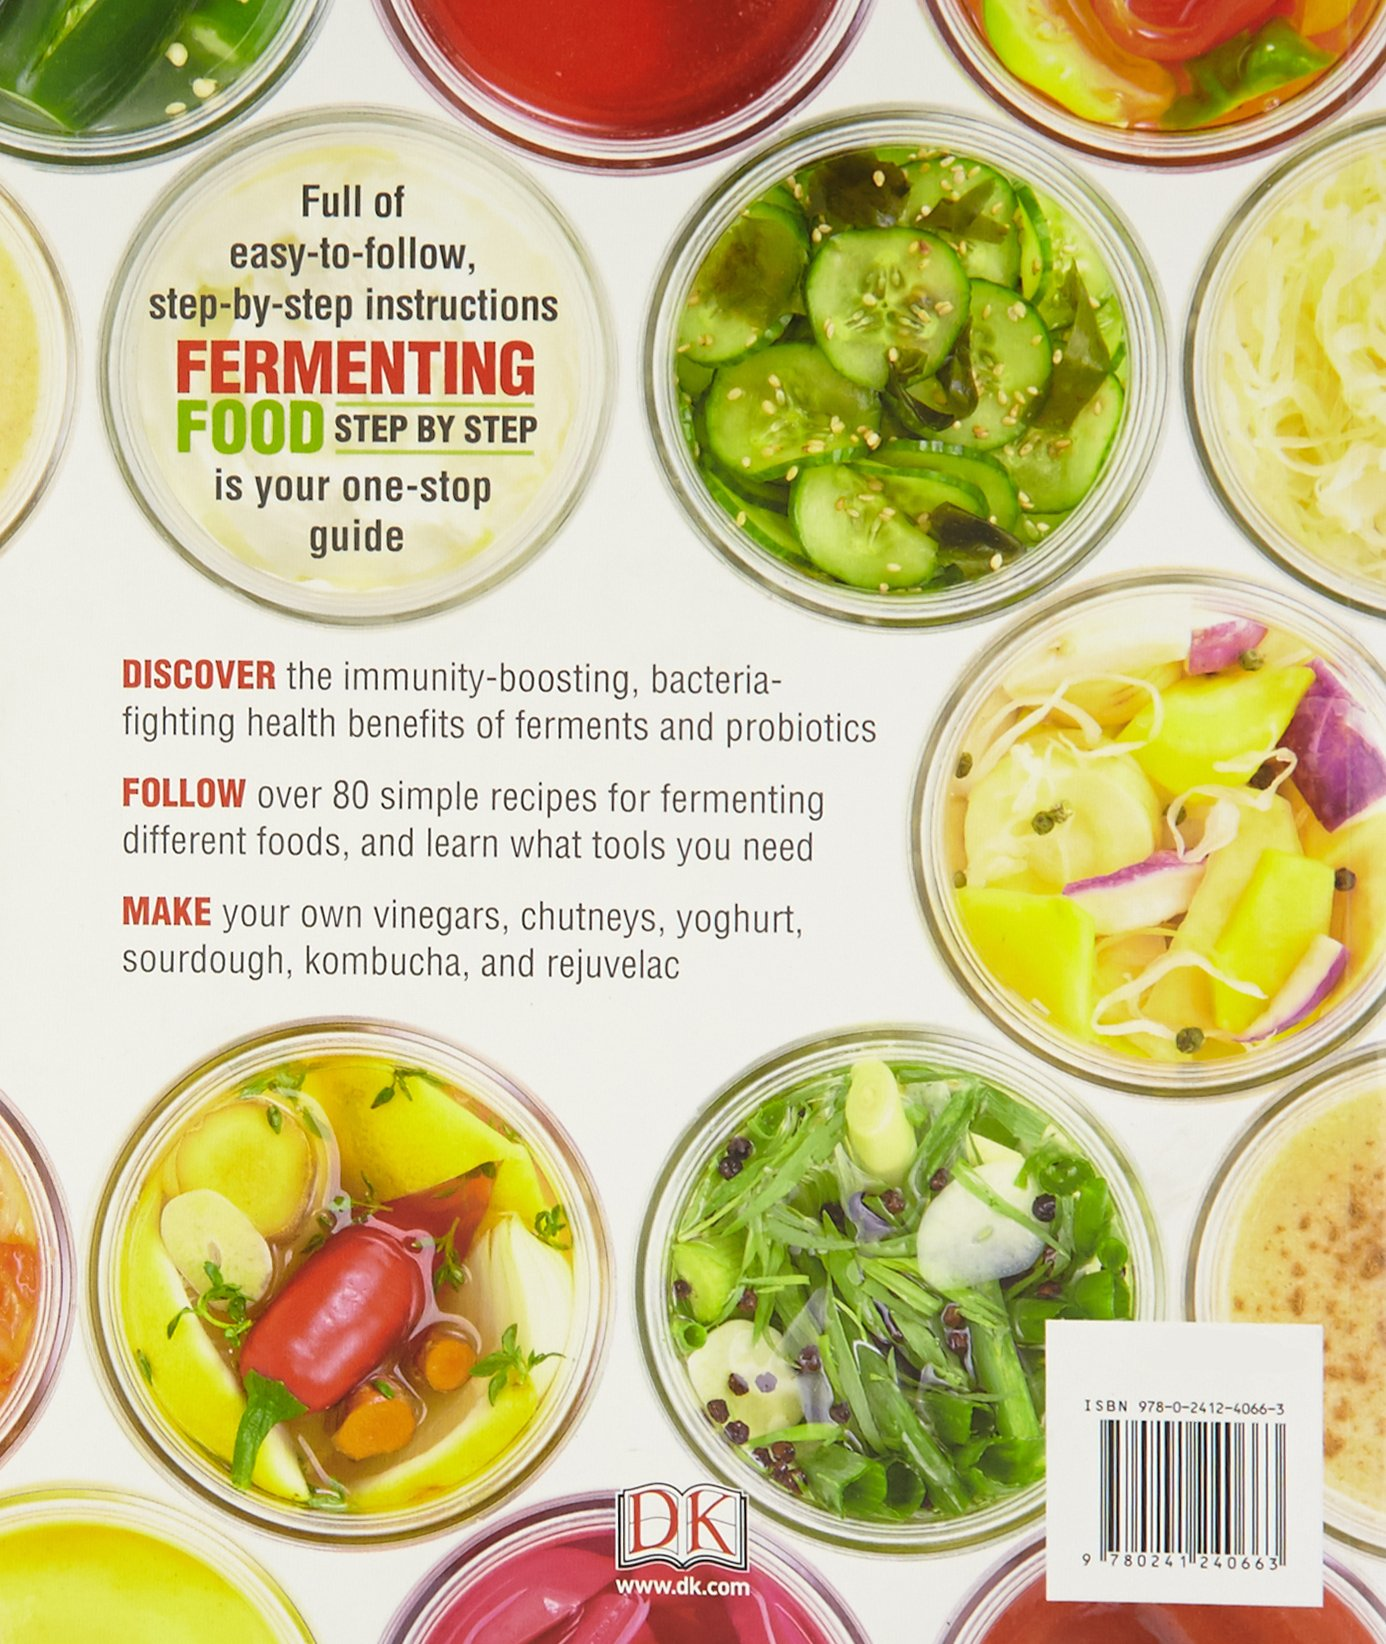 Fermenting Foods Step By Make Your Own Health Boosting Ferments And Probiotics Amazoncouk Adam Elabd 9780241240663 Books